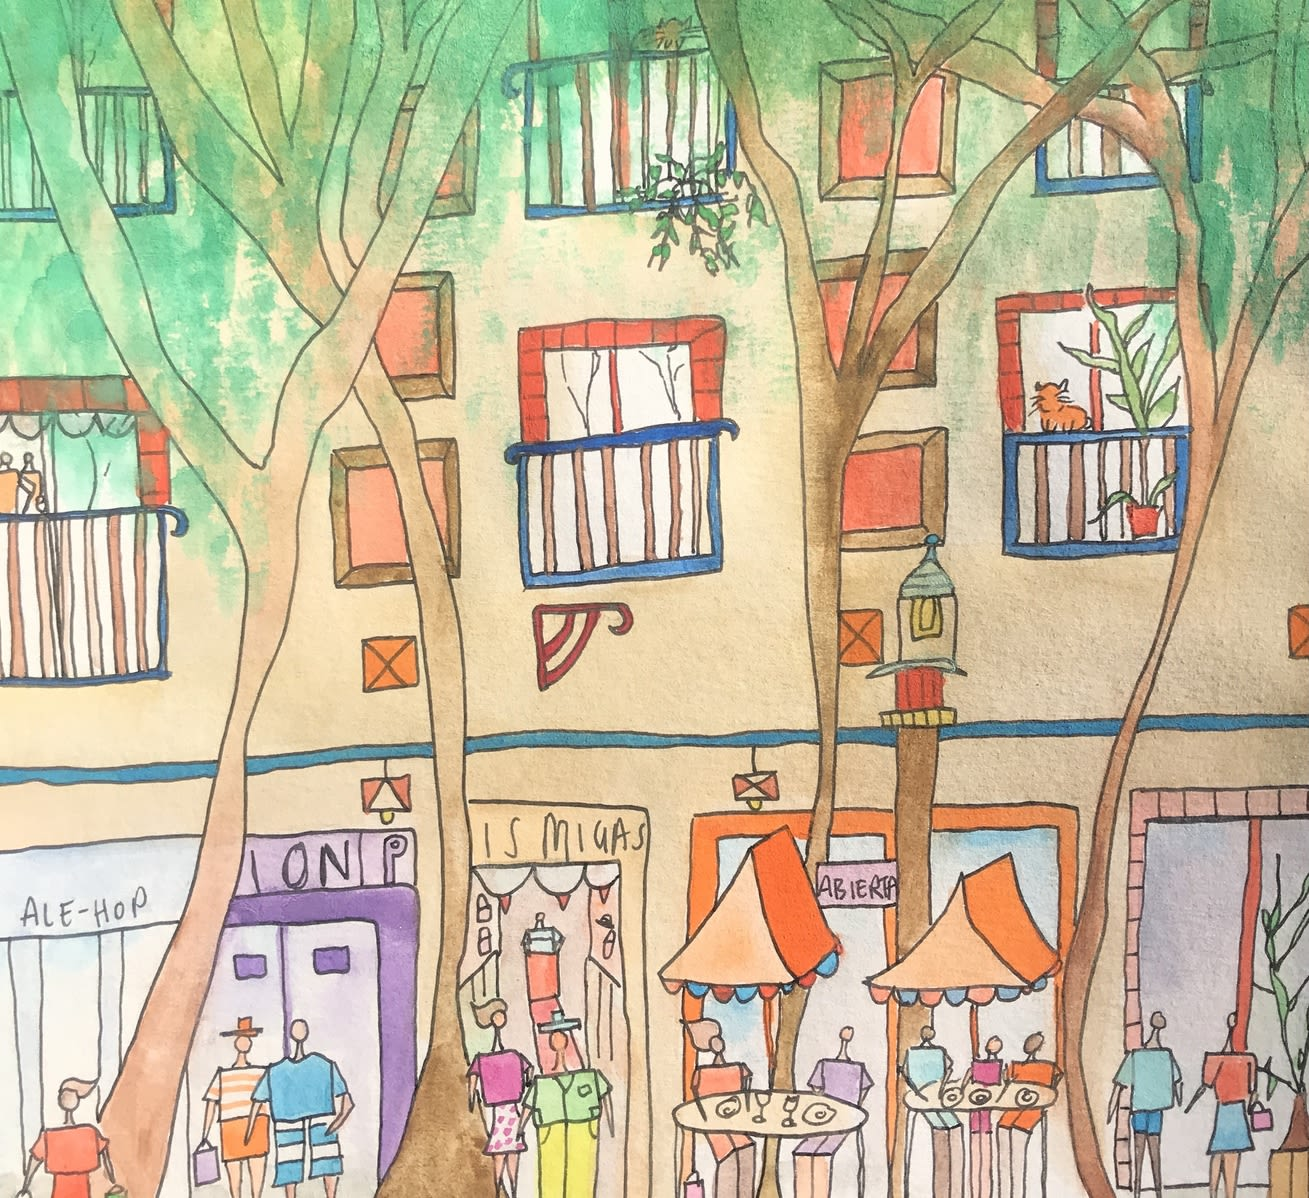 An illustration of a high street showing multiple shop windows